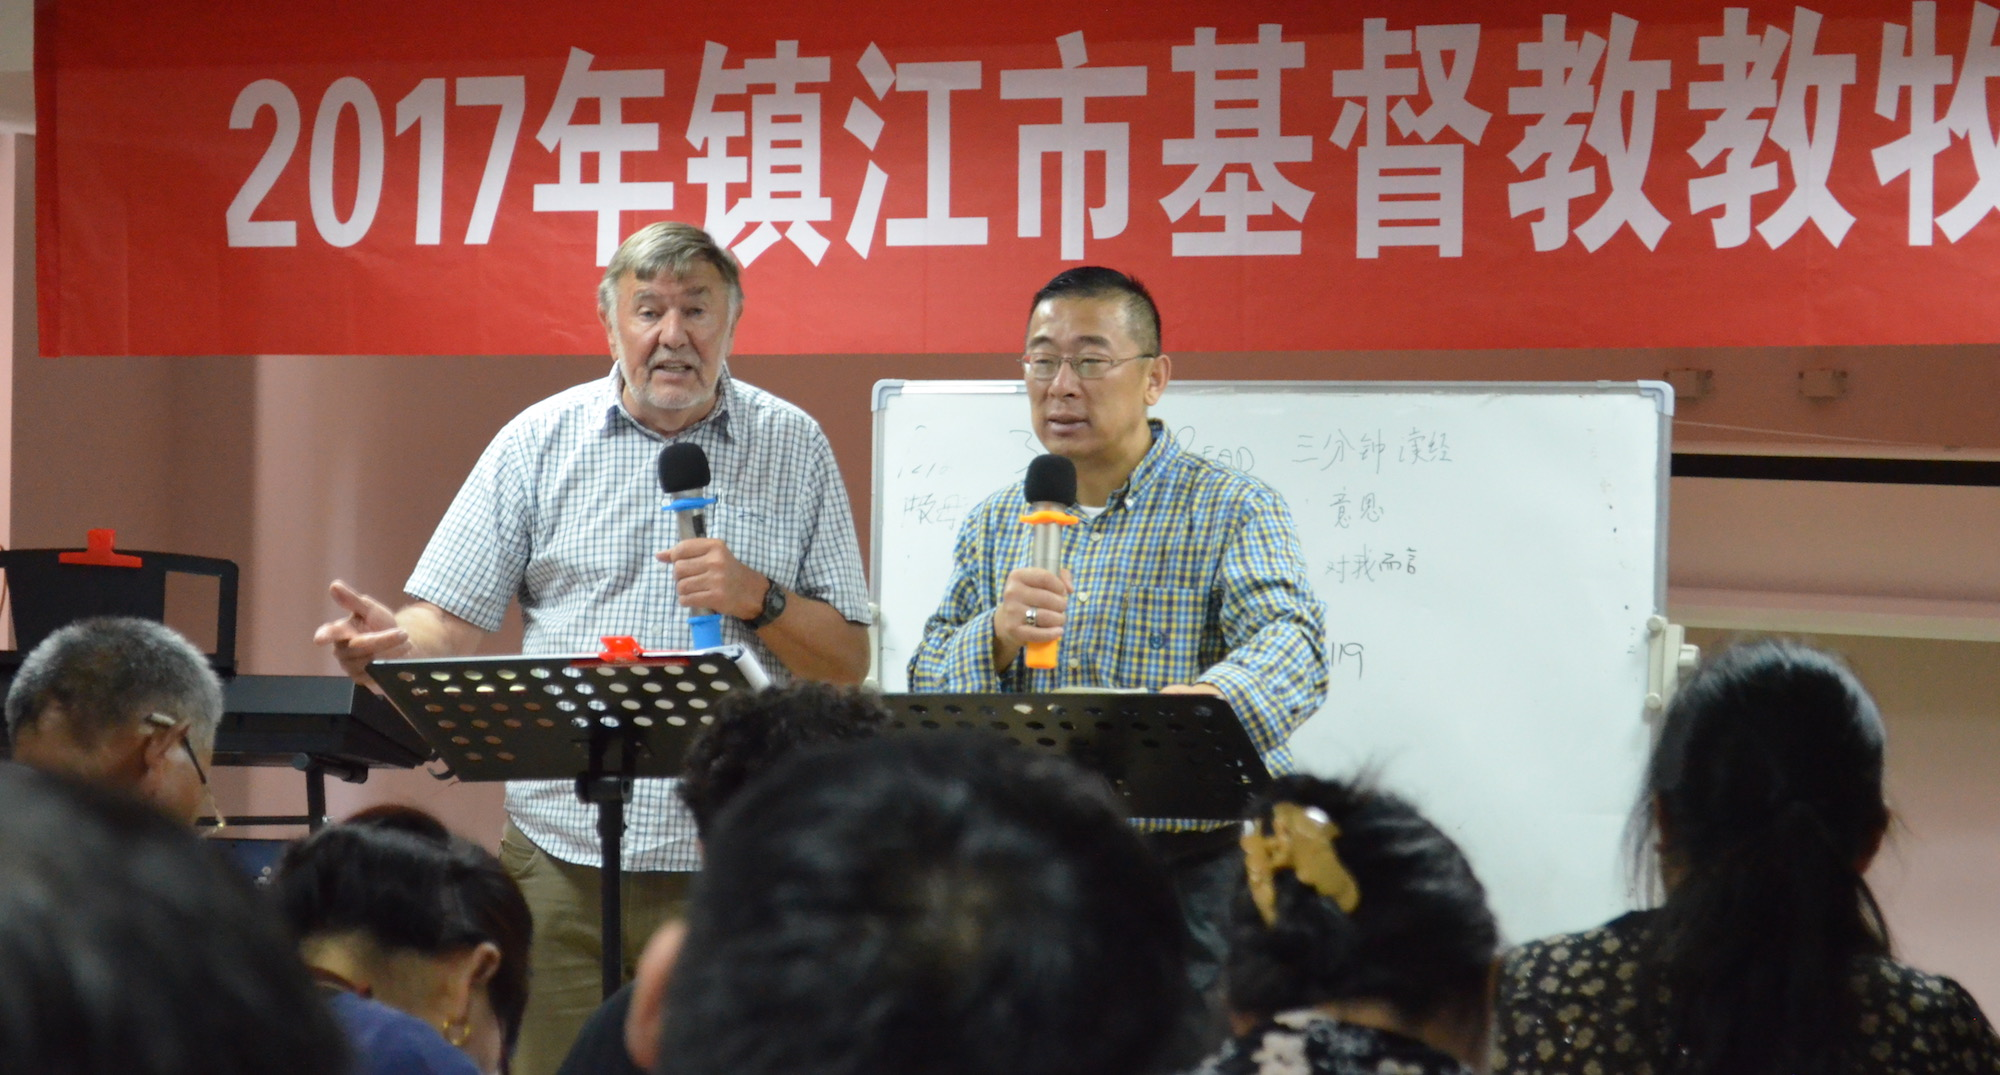 New library at Chinese Bible school